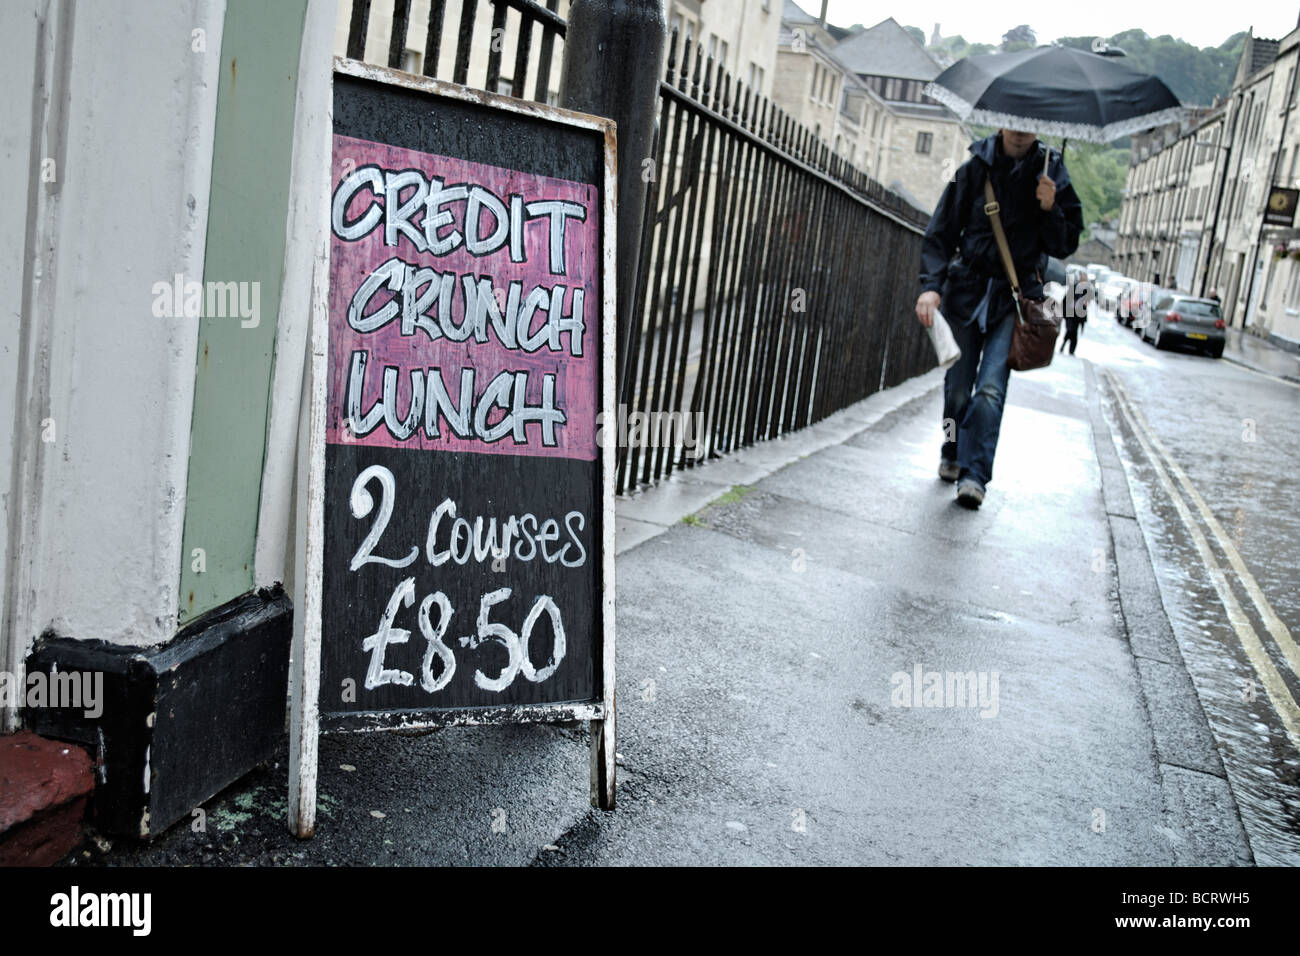 Credit crunch lunch sign outside restaurant in Bath South West England UK - Stock Image